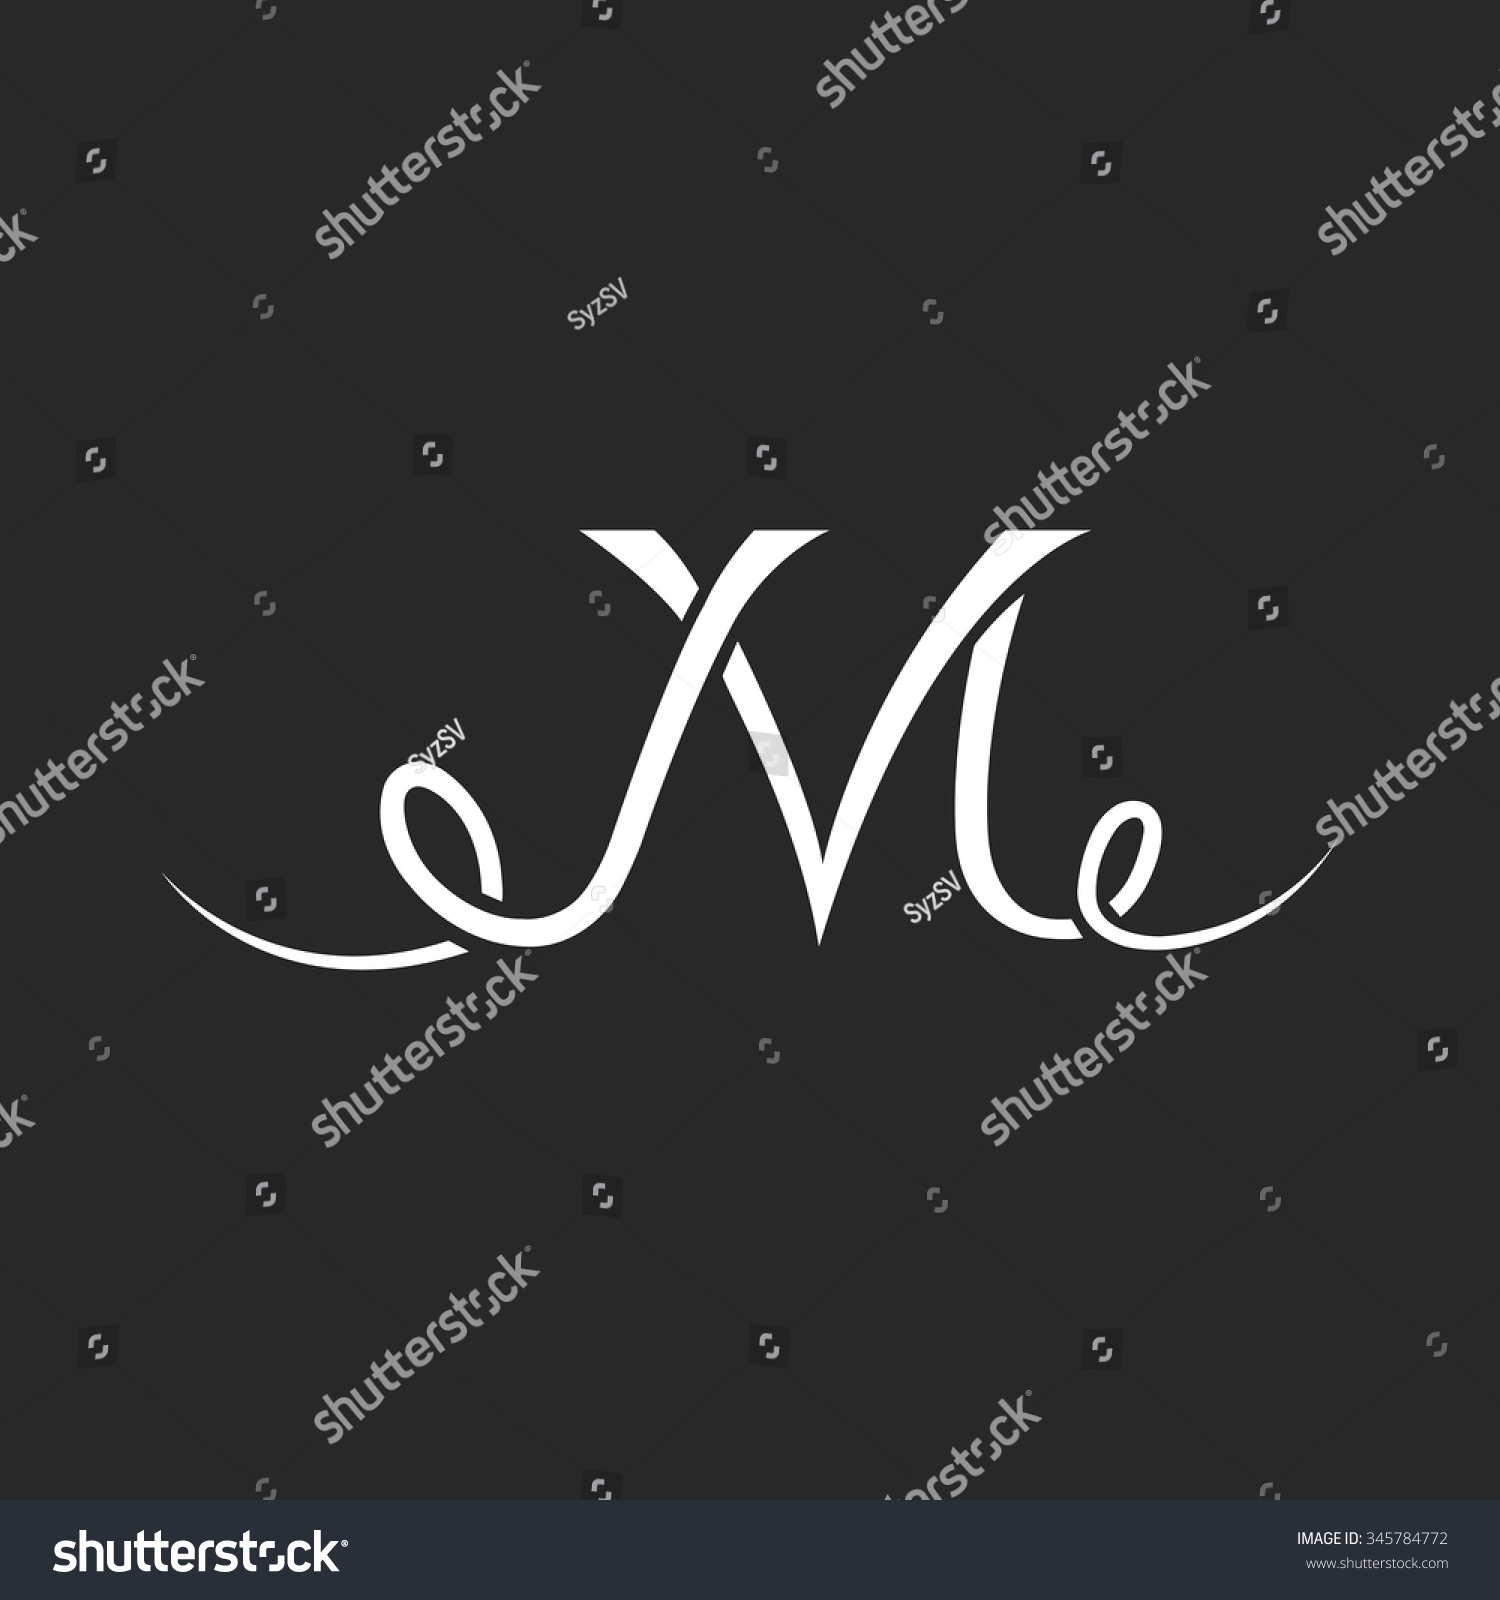 monogram tattoo m letter logo hand drawn thin line overlapping mockup calligraphic tattoo design